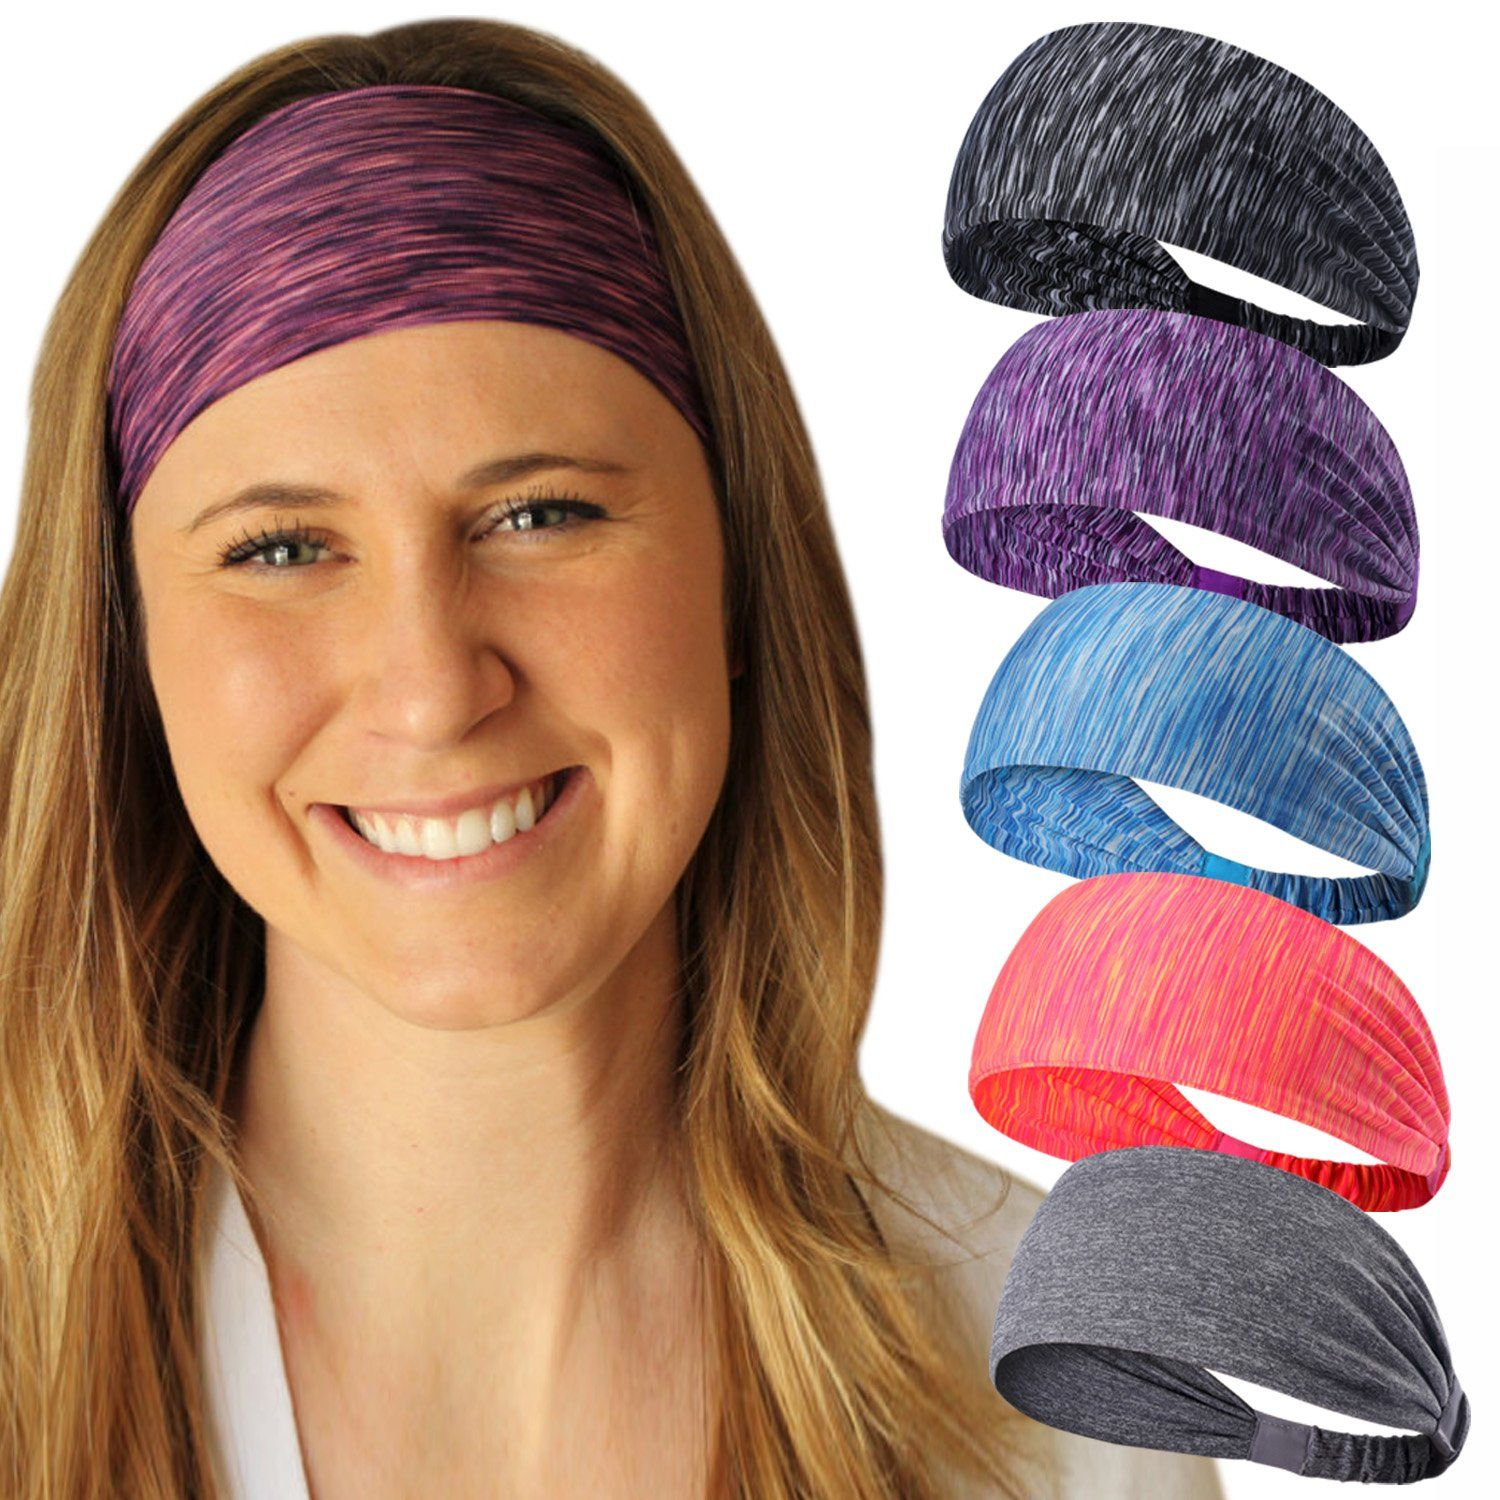 Workout Headband For Women Men Non Slip Sweatband Stretchy